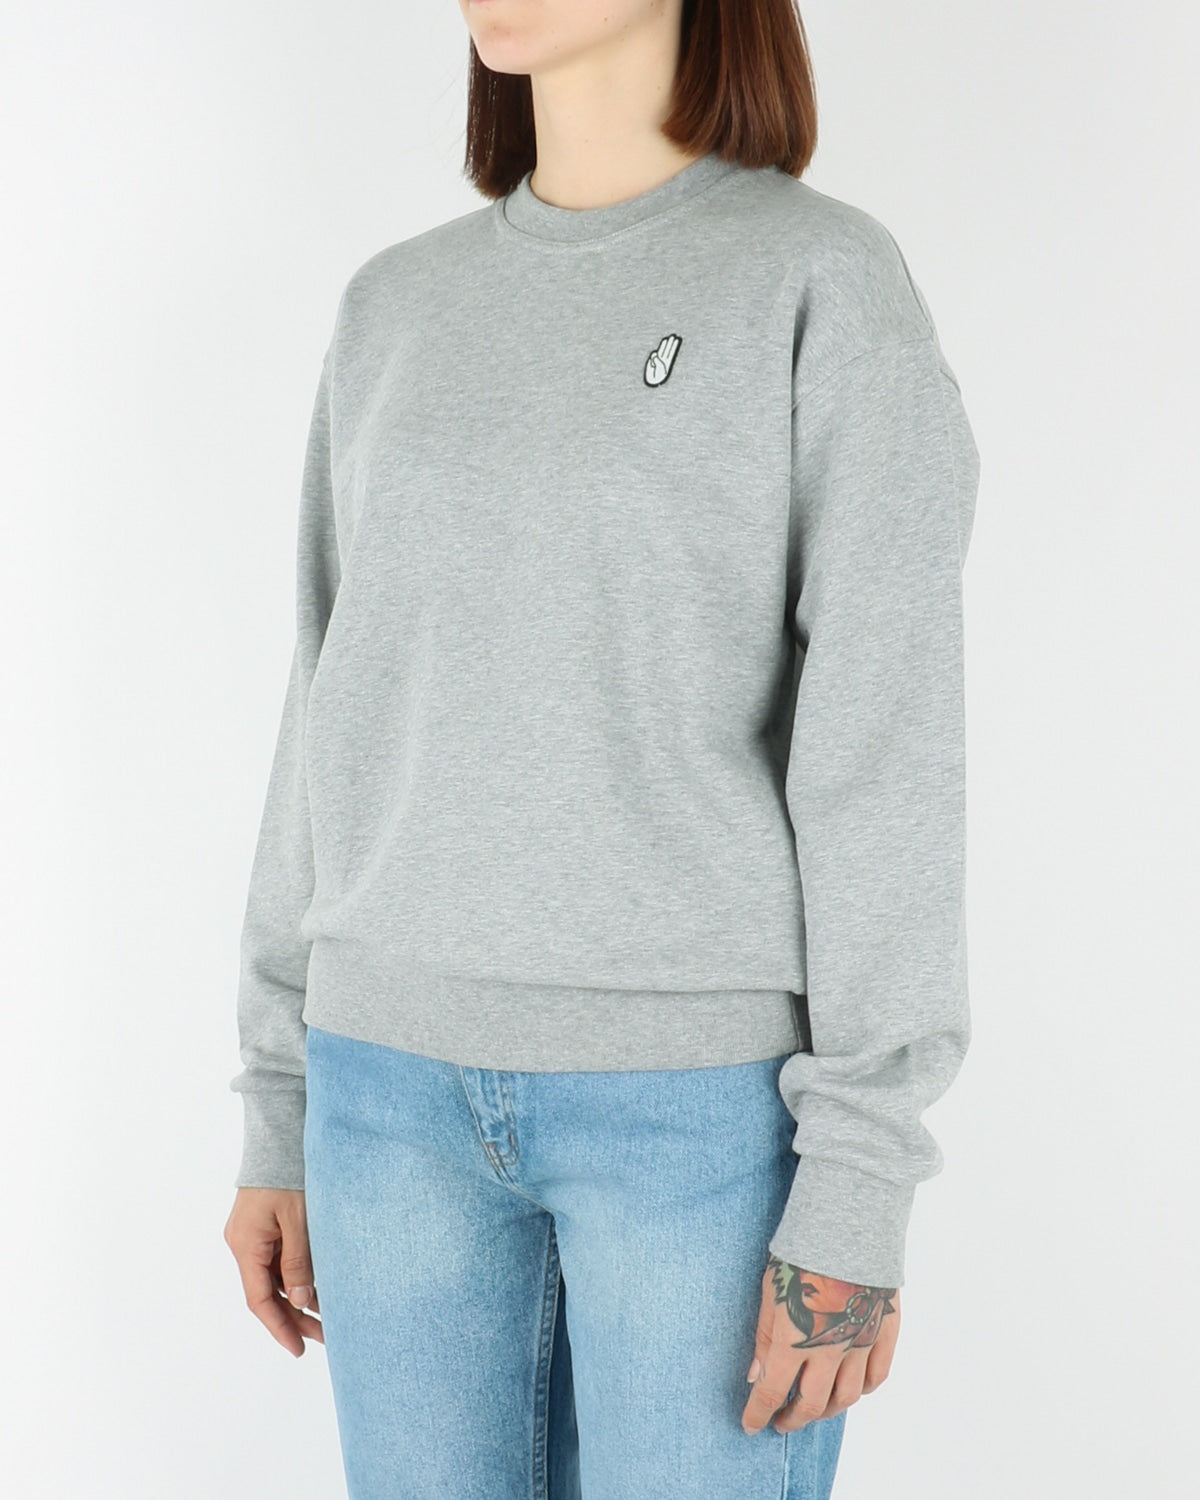 wood wood_tara_sweatshirt_grey melange_view_2_3